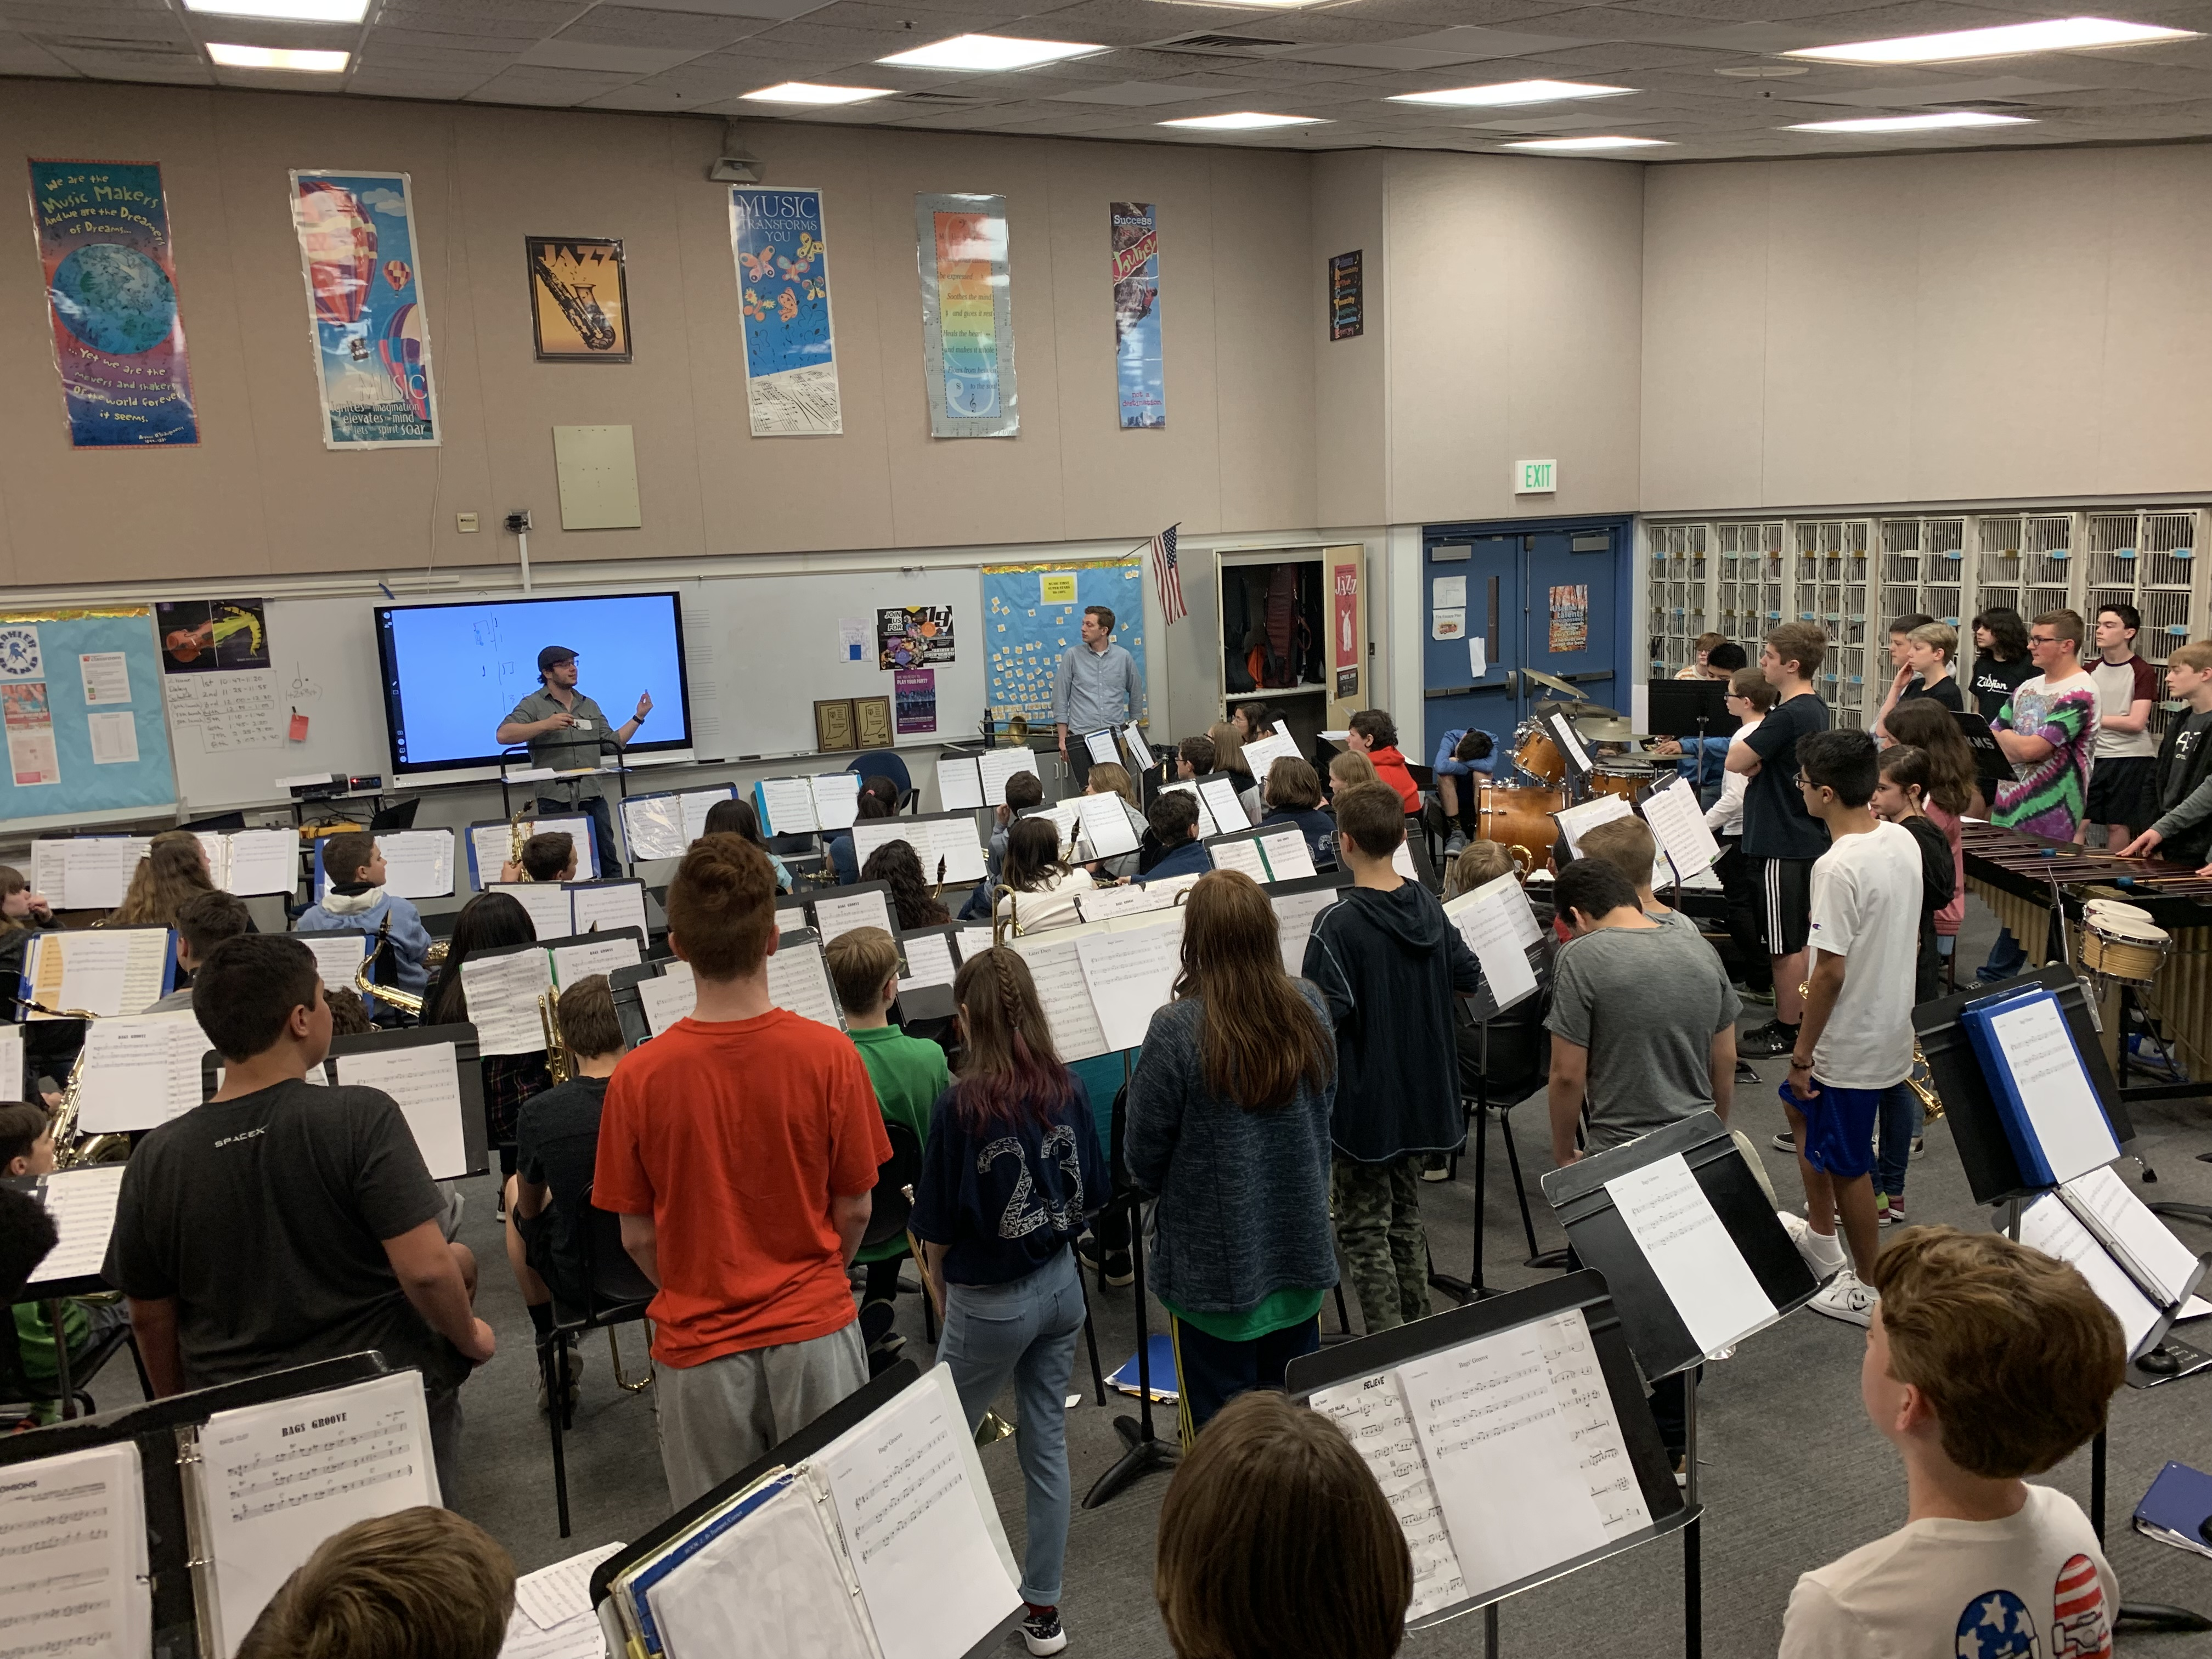 In preparation for the Jazz showcase, middle school jazz bands received special instruction from professional musicians Andy Sutton and Michael Nearpass.